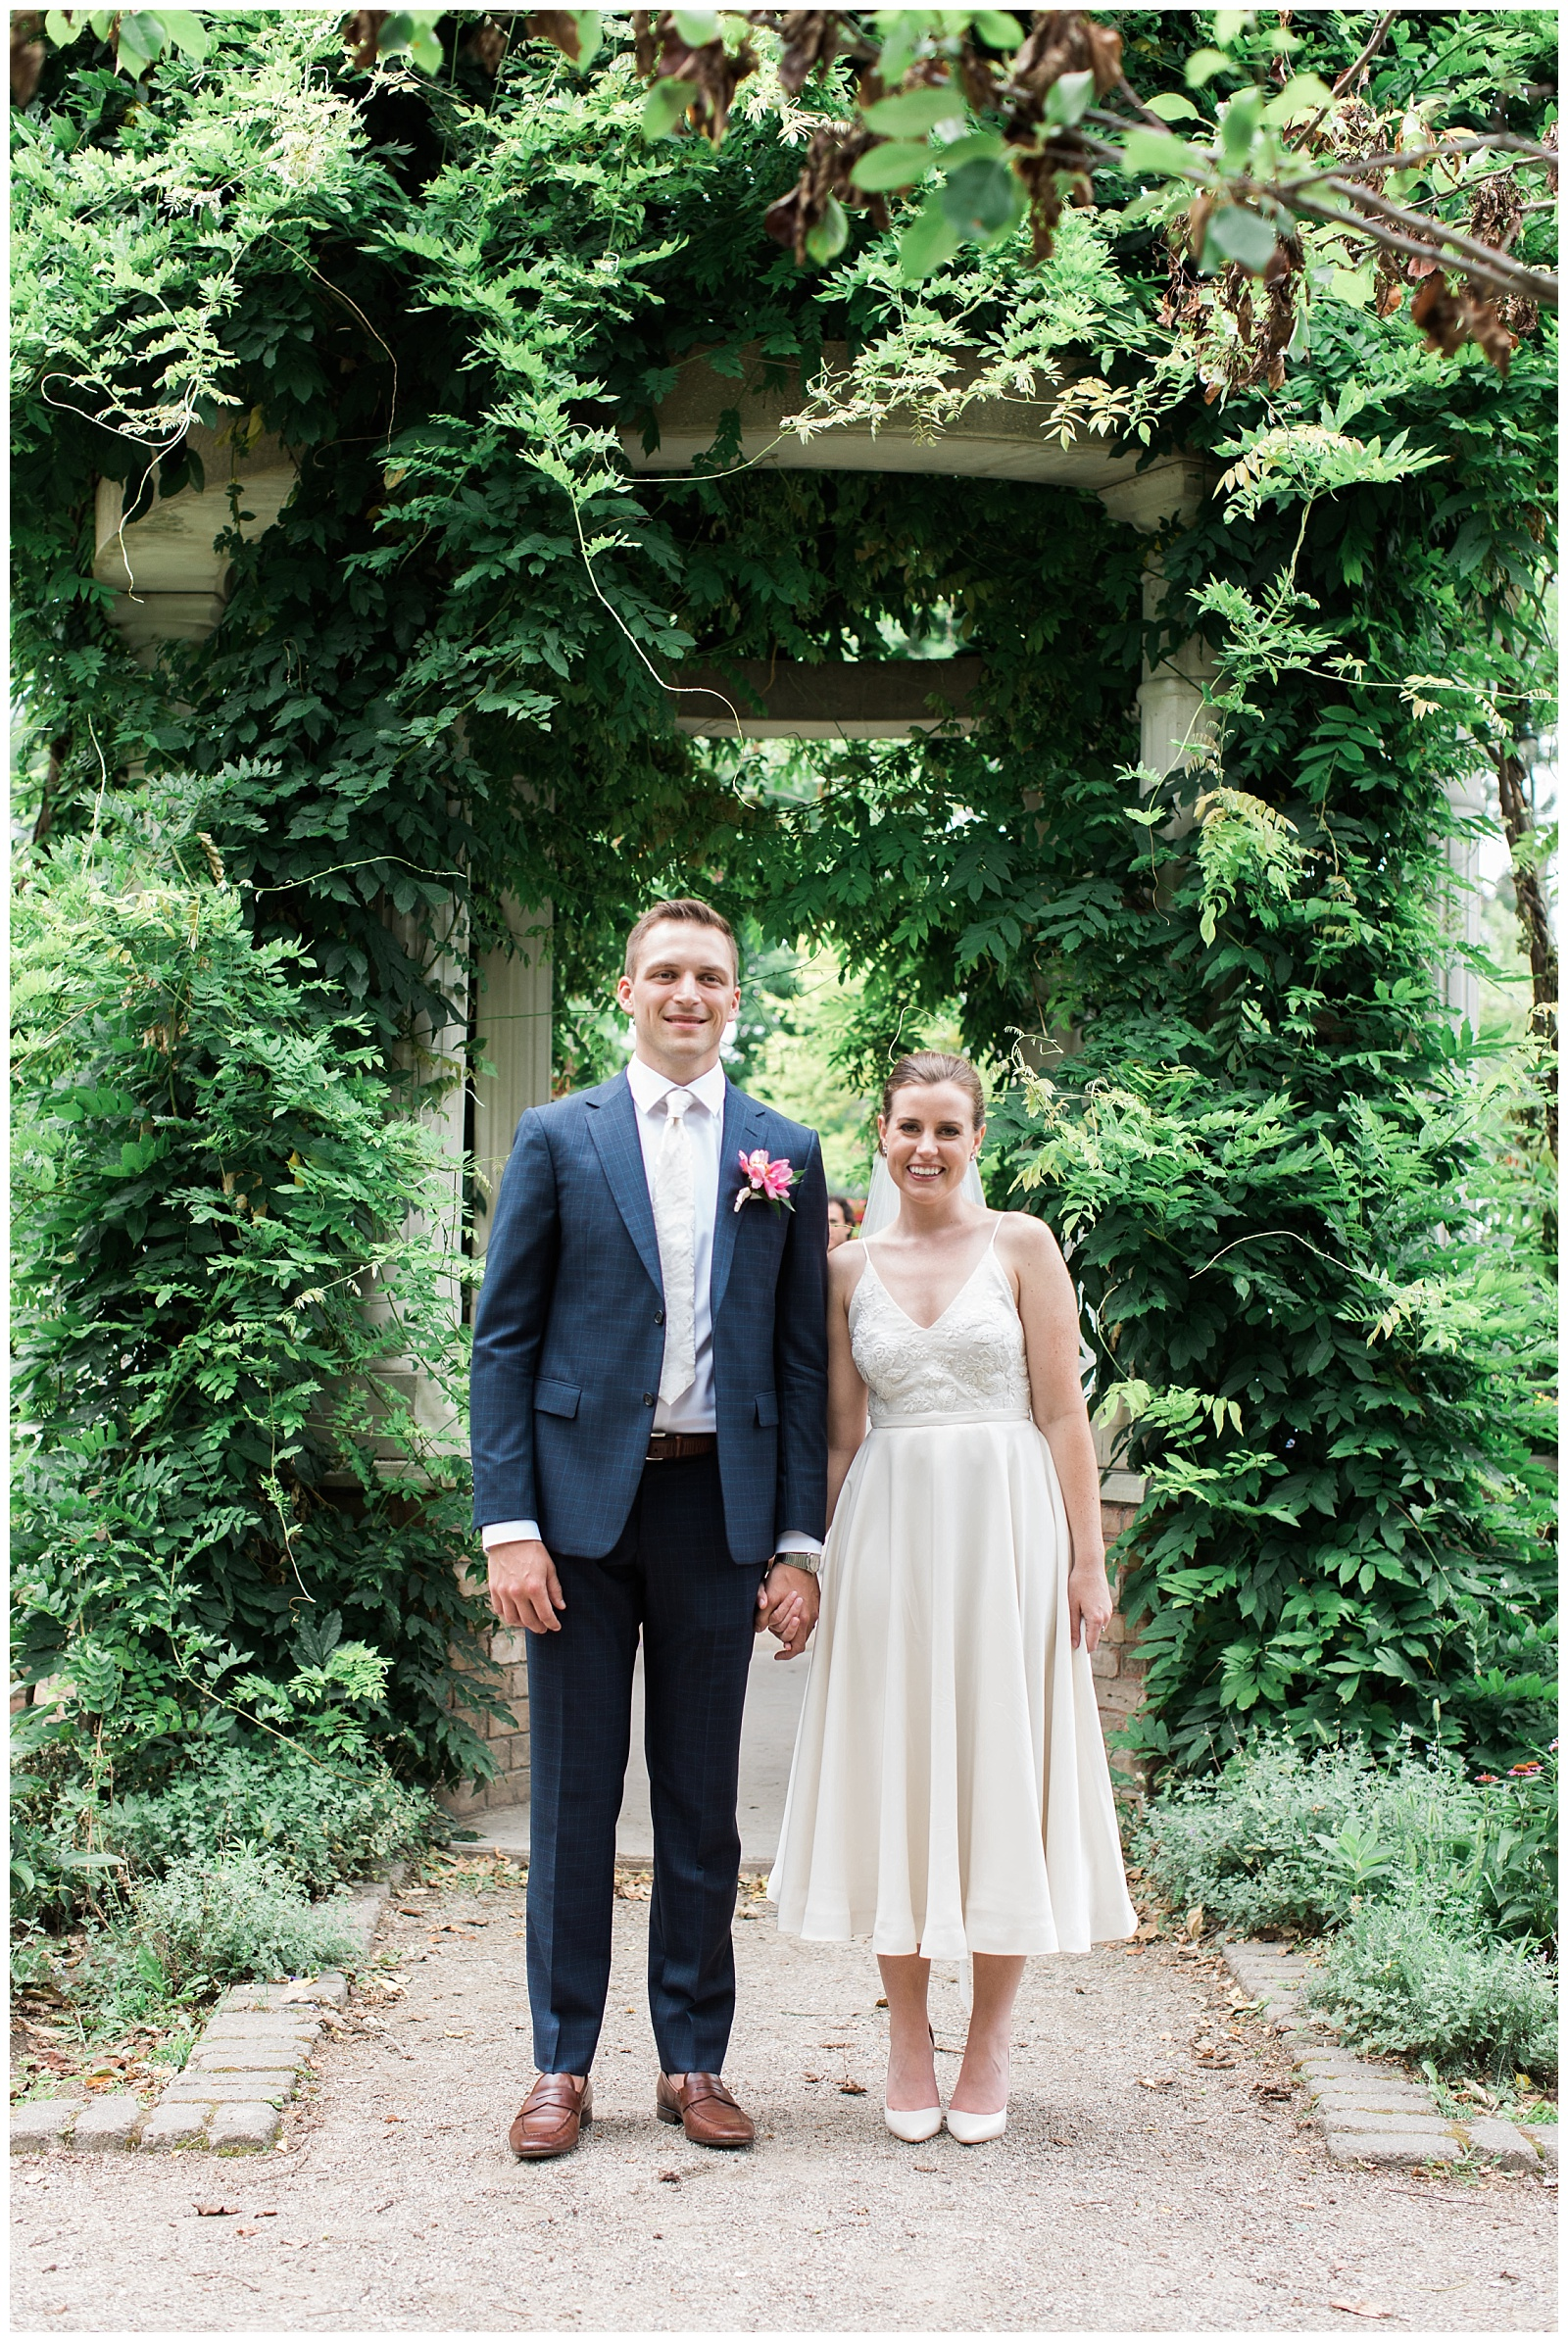 Bride and groom surrounded by greenery at Guelph Ontario Wedding | Ontario Wedding Photographer | Toronto Wedding Photographer | 3photography